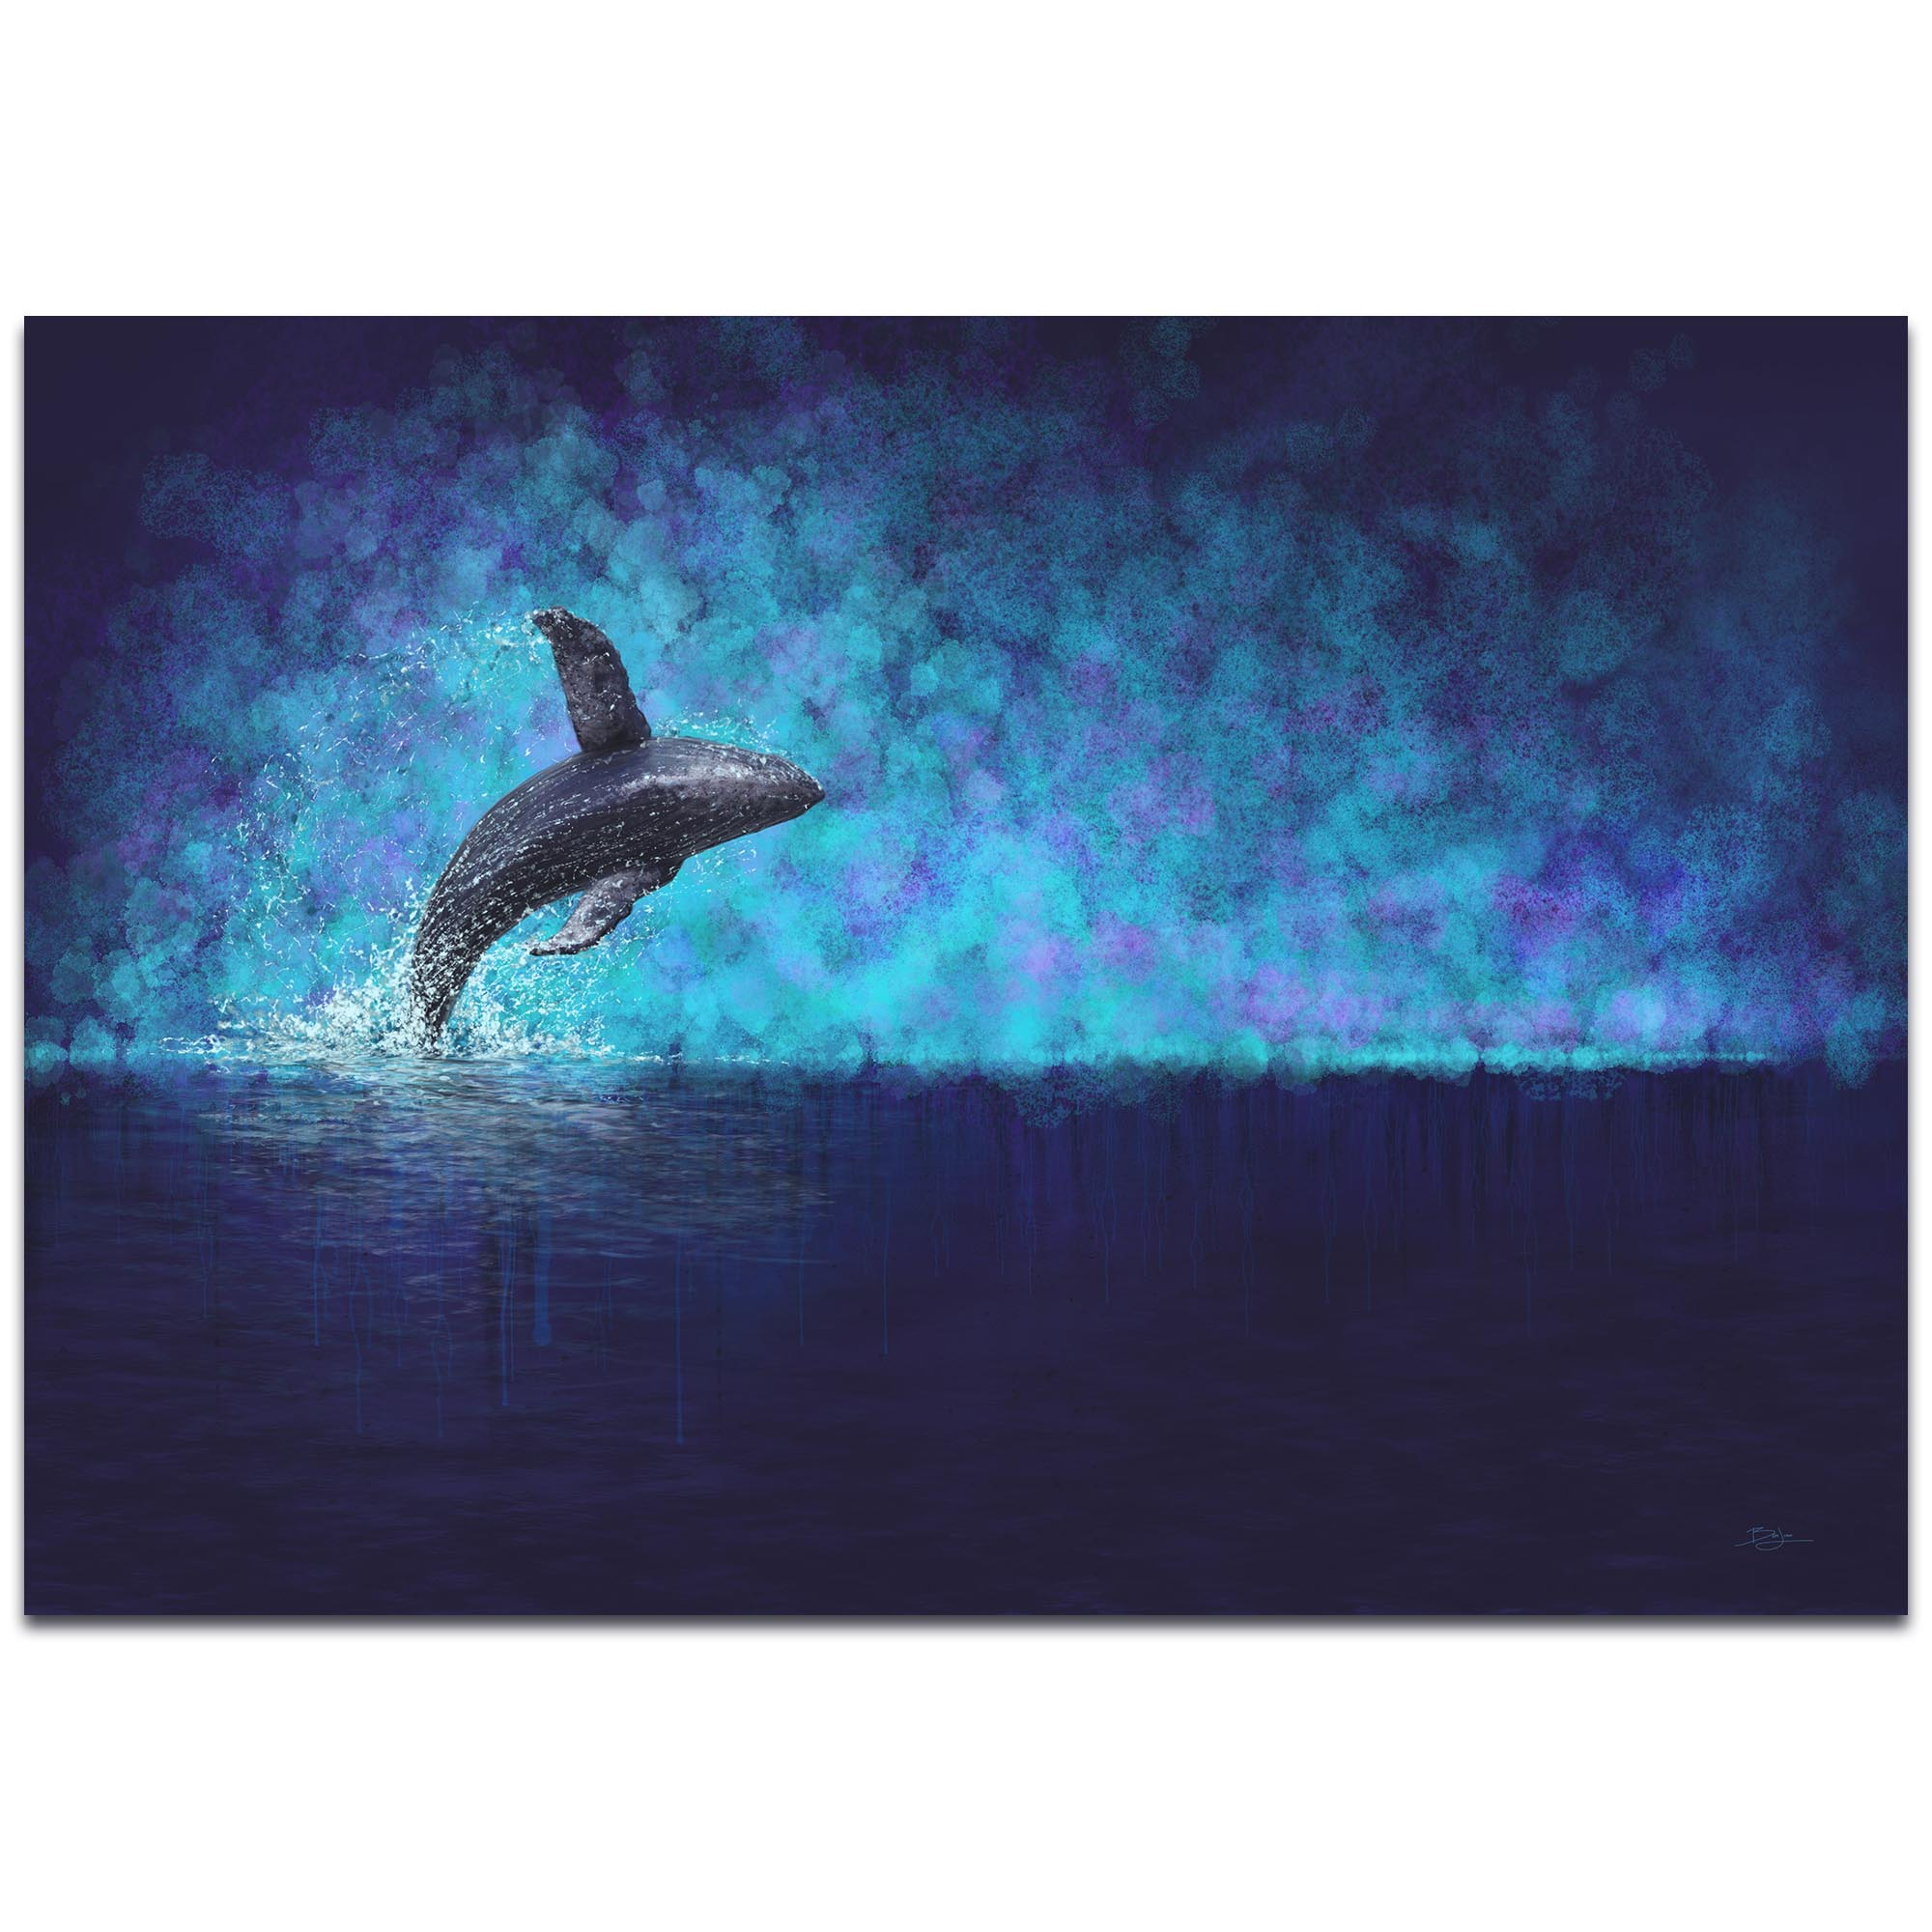 Whale Painting 'Breaching the Night' - Humpback Art on Metal or Acrylic